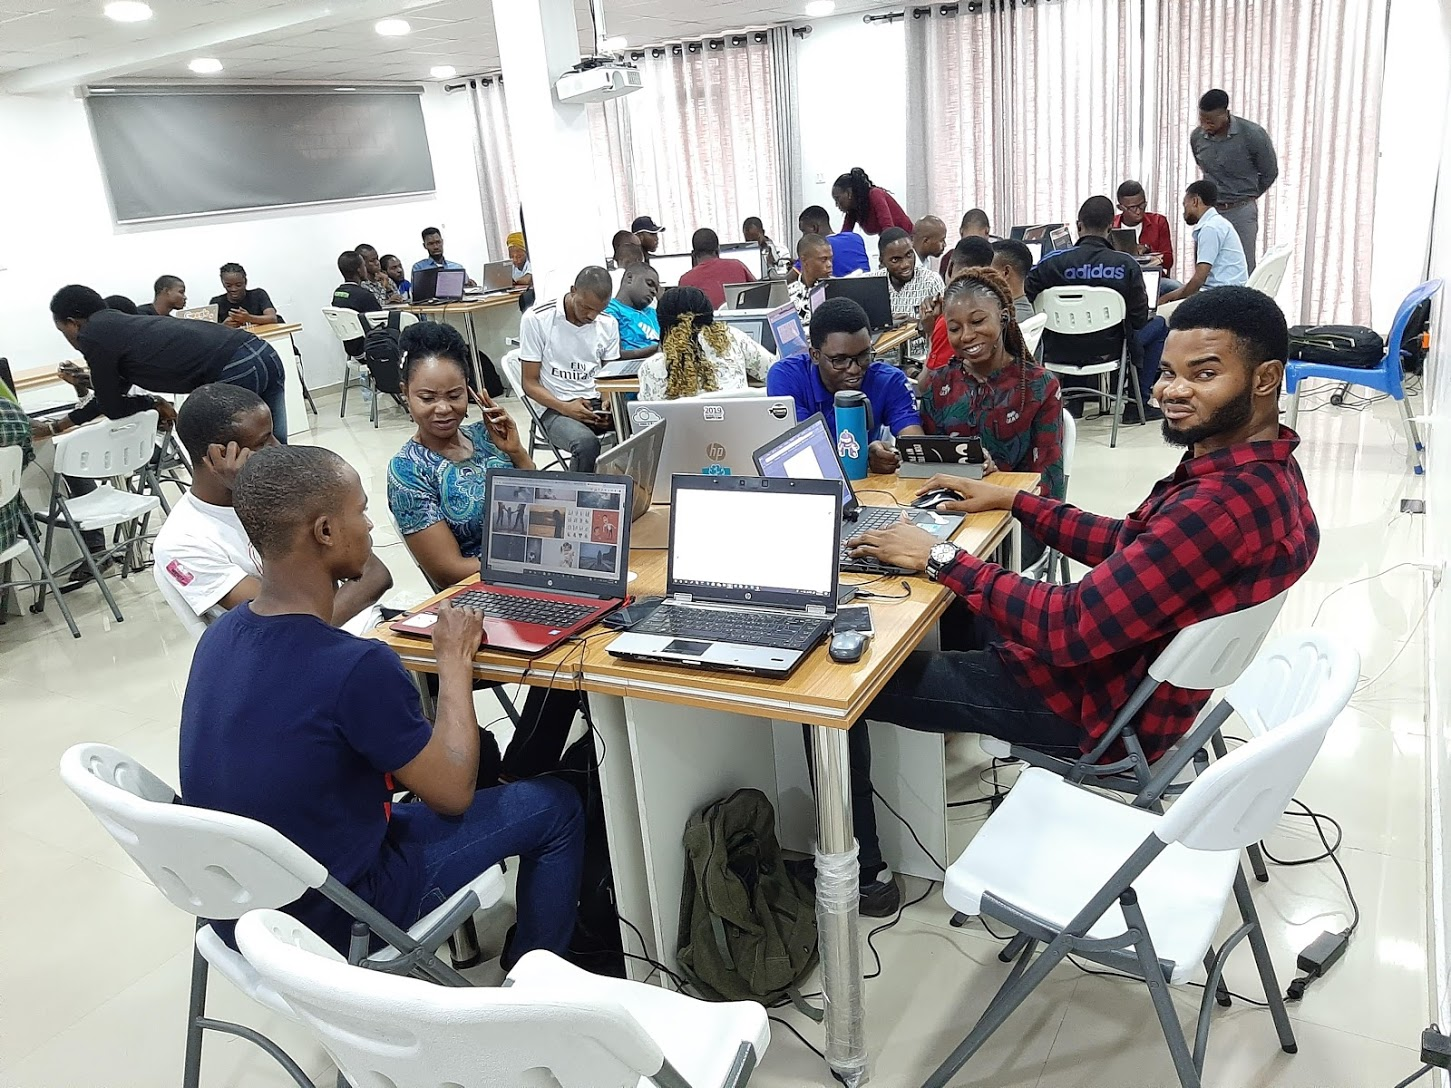 From 2019 Lagos doaction hackathon